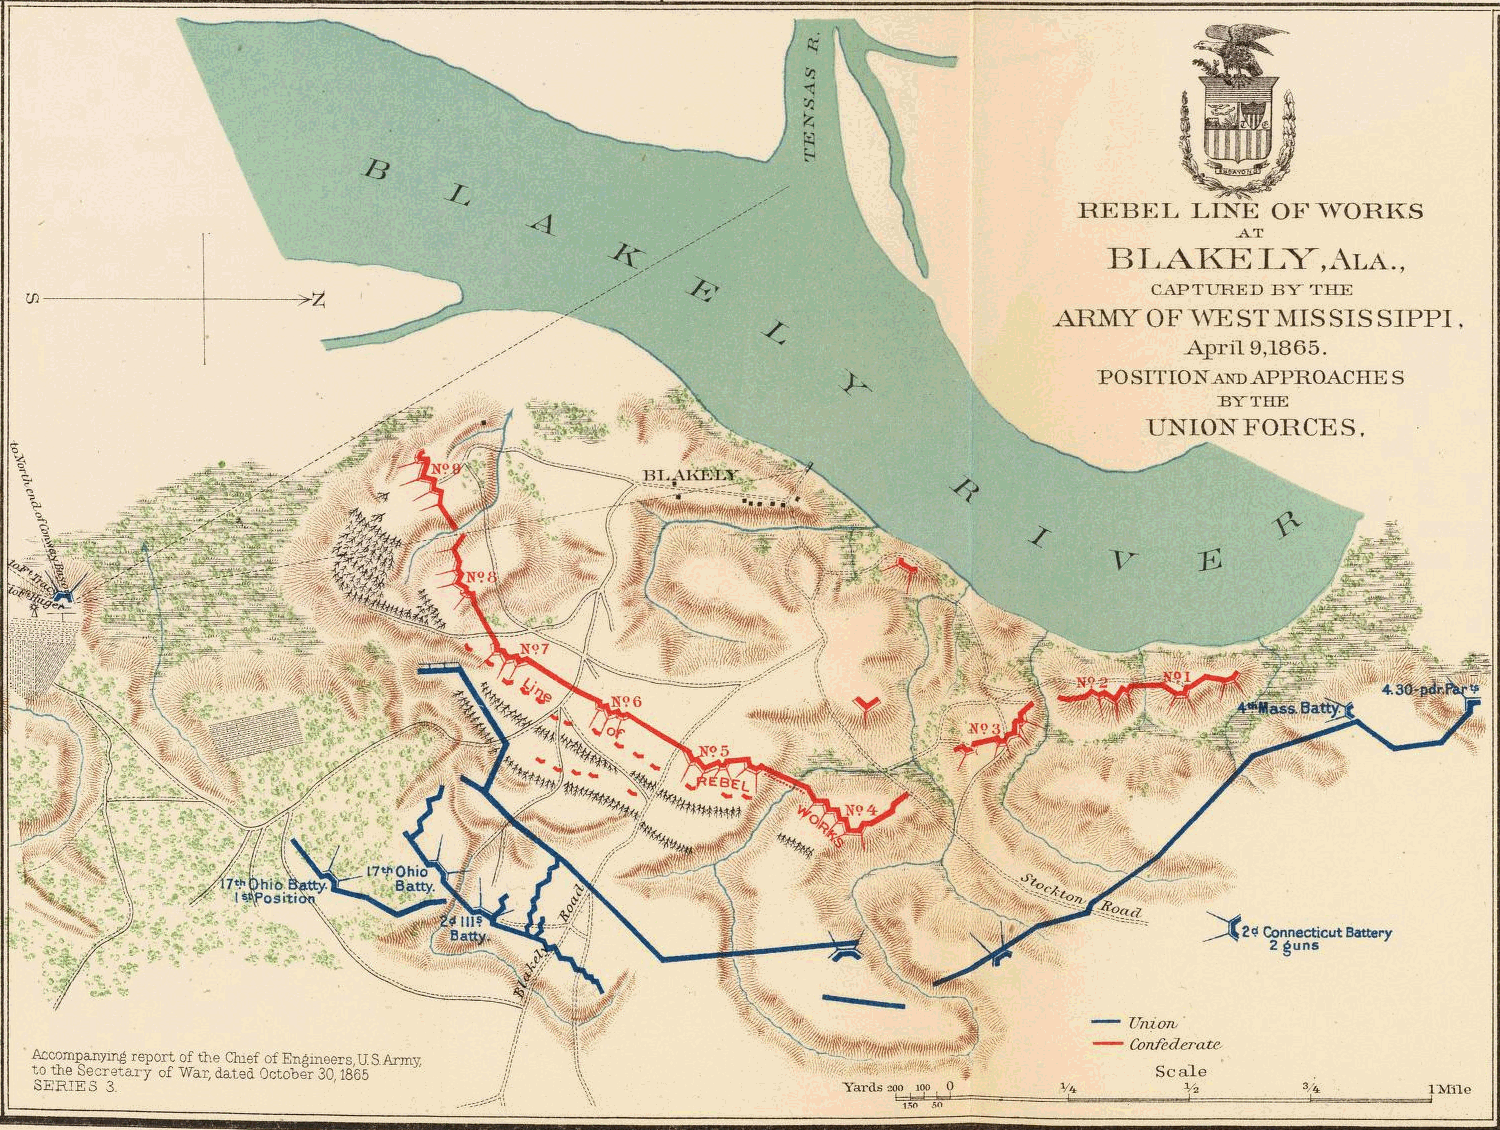 FileBattle Of Fort Blakely Mappng Wikimedia Commons - Map of us army forts